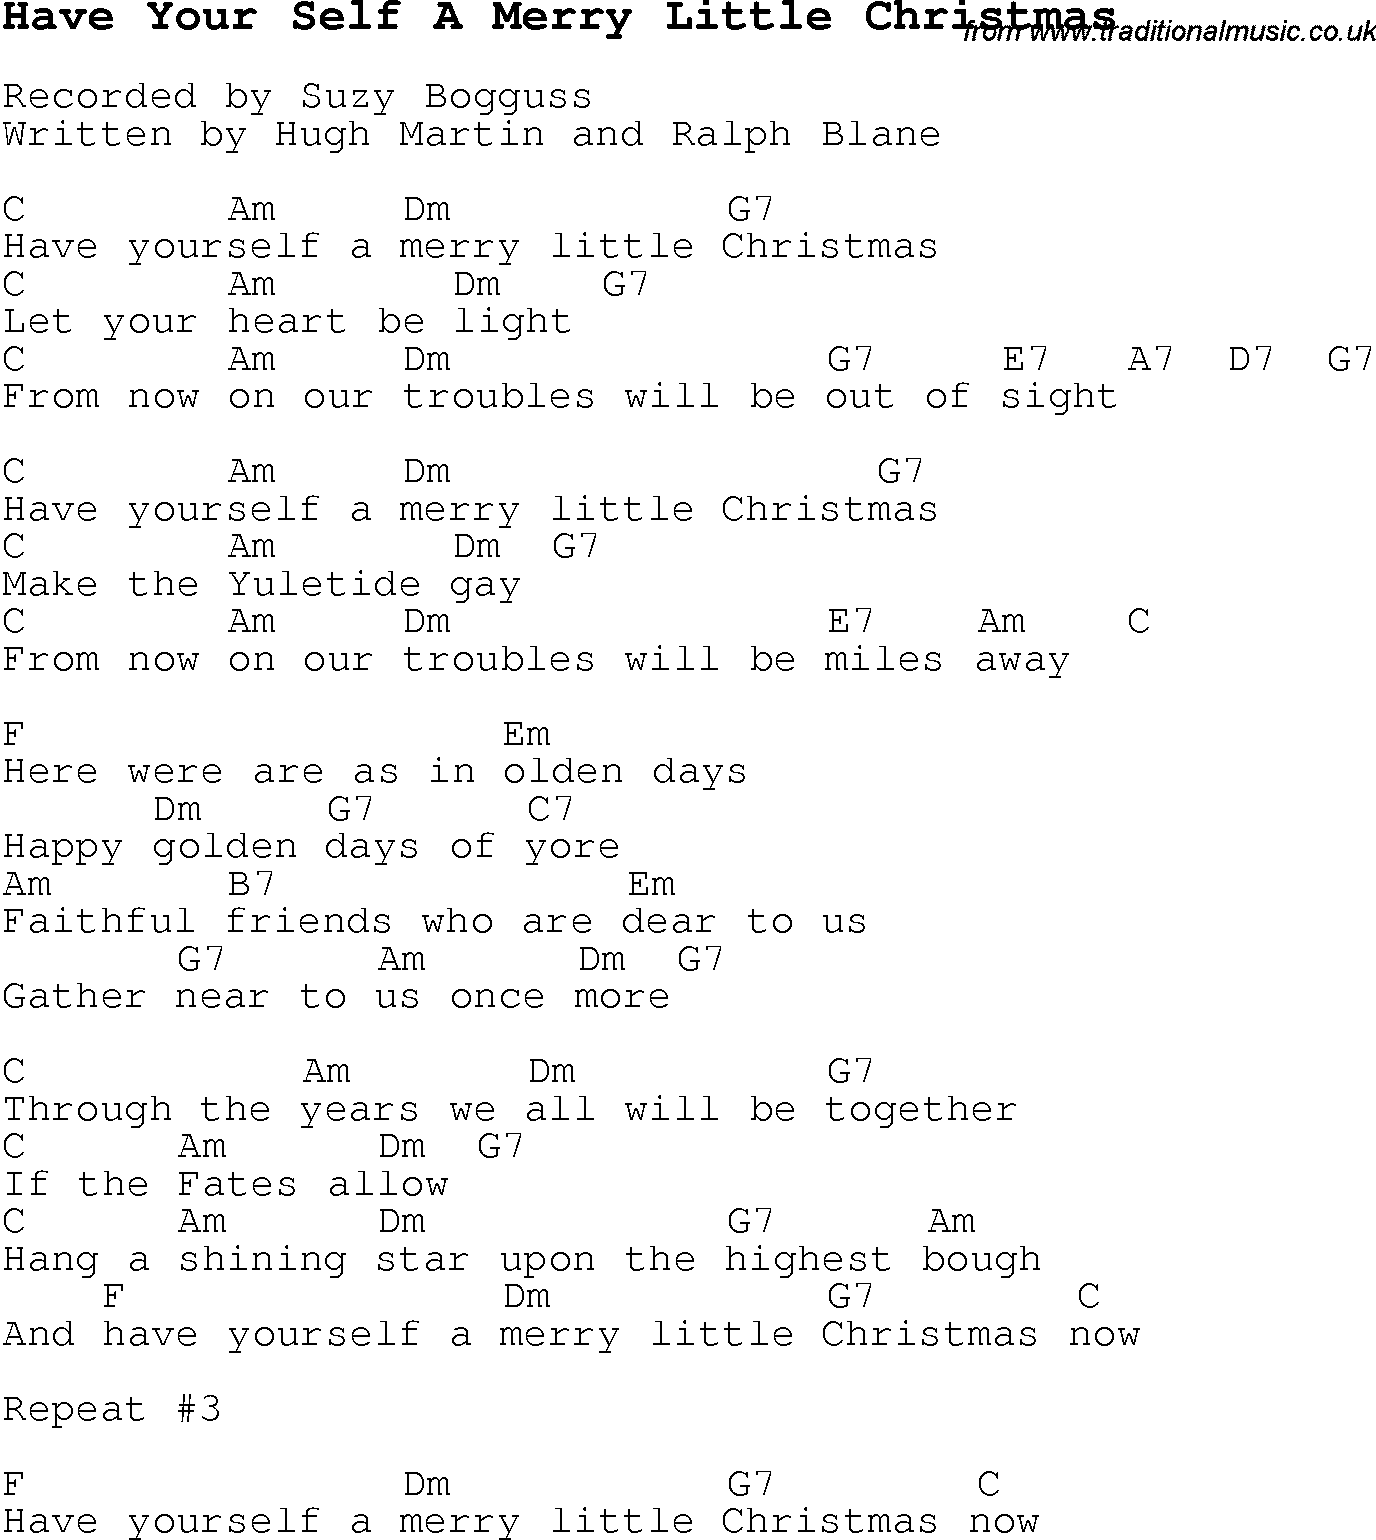 Christmas Carol/Song lyrics with chords for Have Your Self A Merry ...